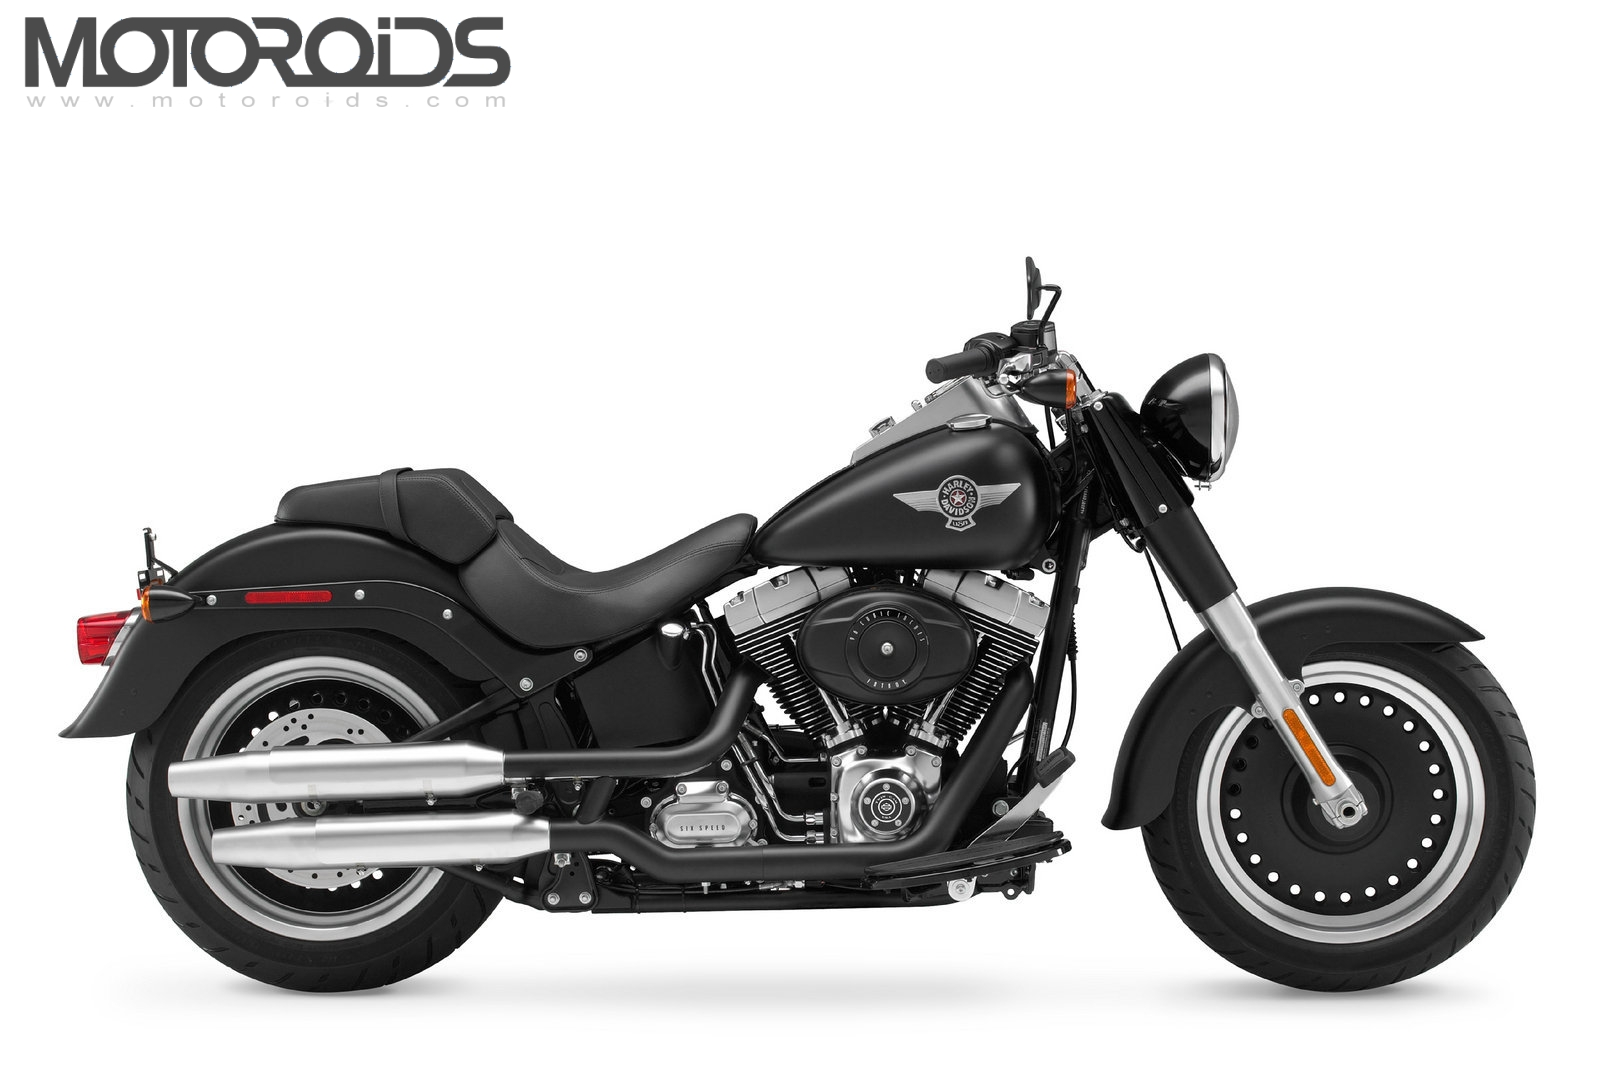 Motorcycle Harley Davidson 2015 Dyna Wiring Diagram Download This New Bike Models Picture